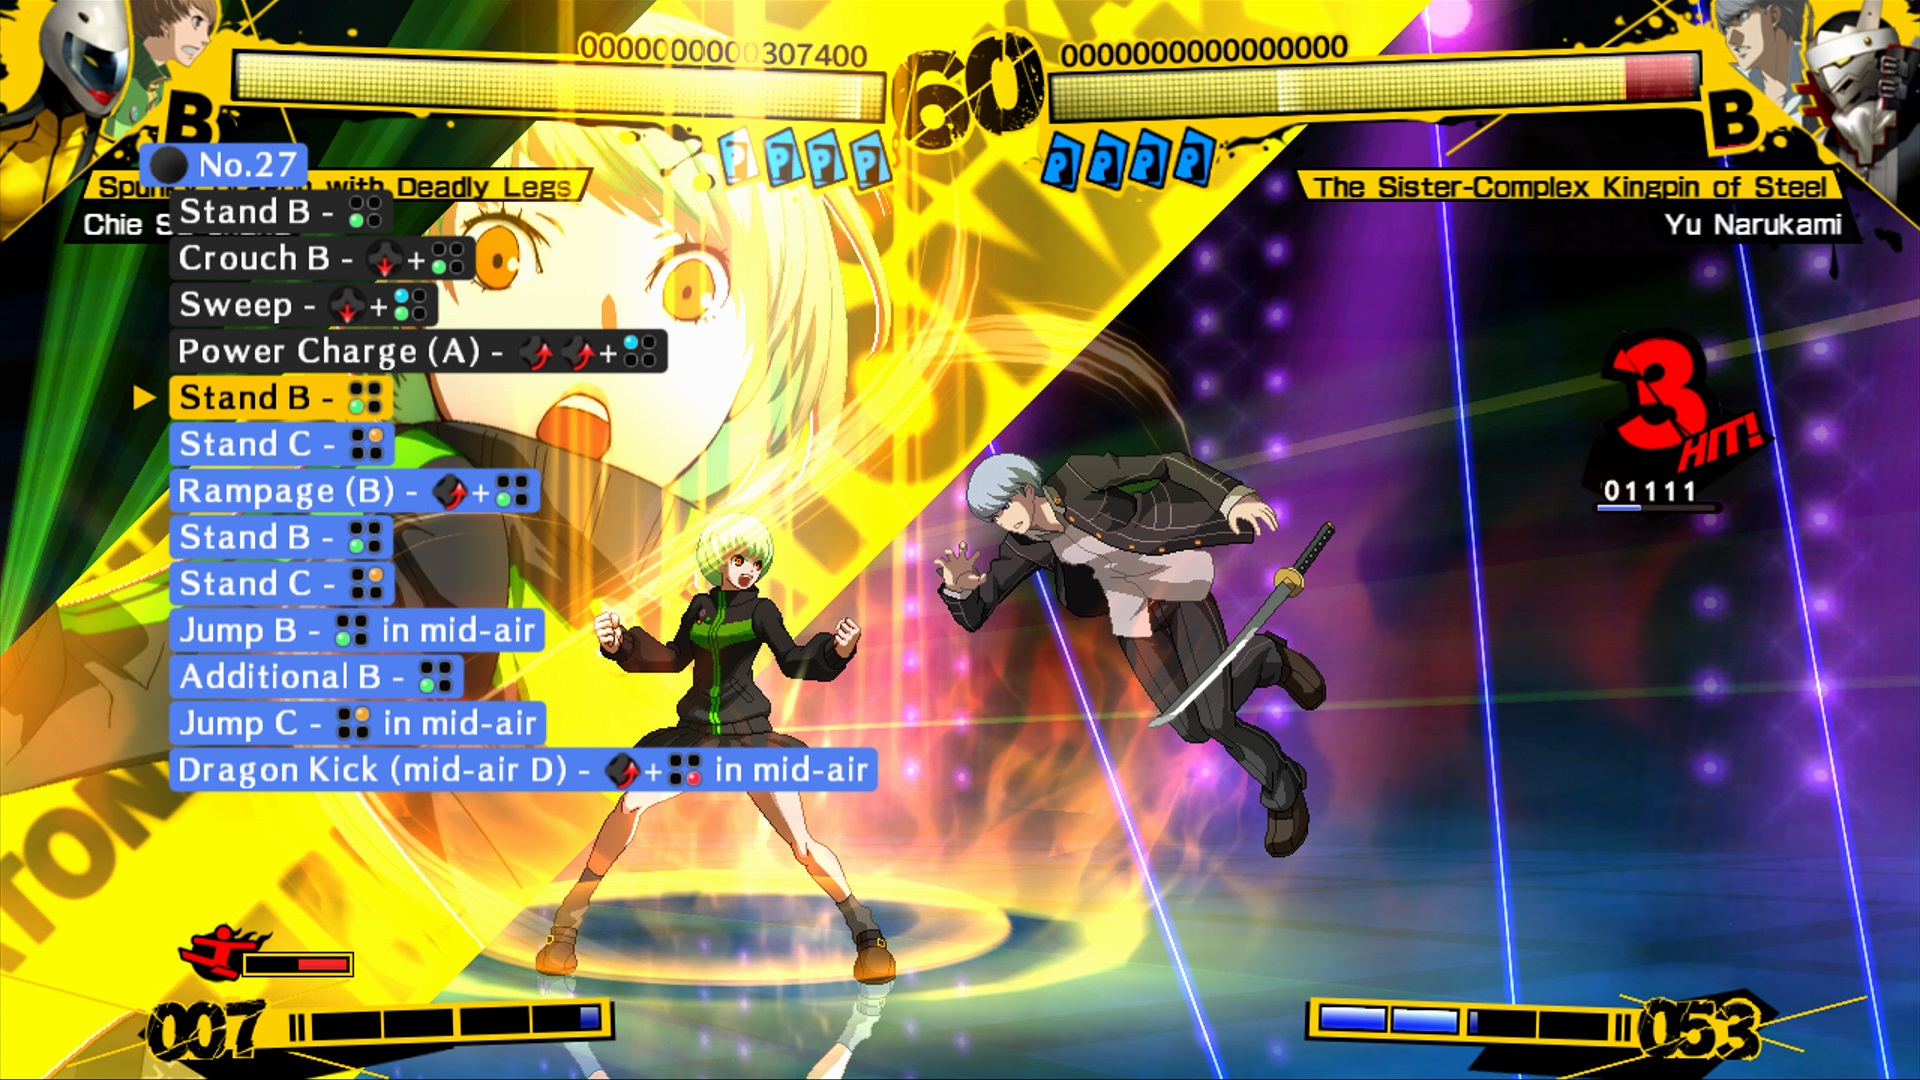 Persona 4 Arena now available as a digital download on the